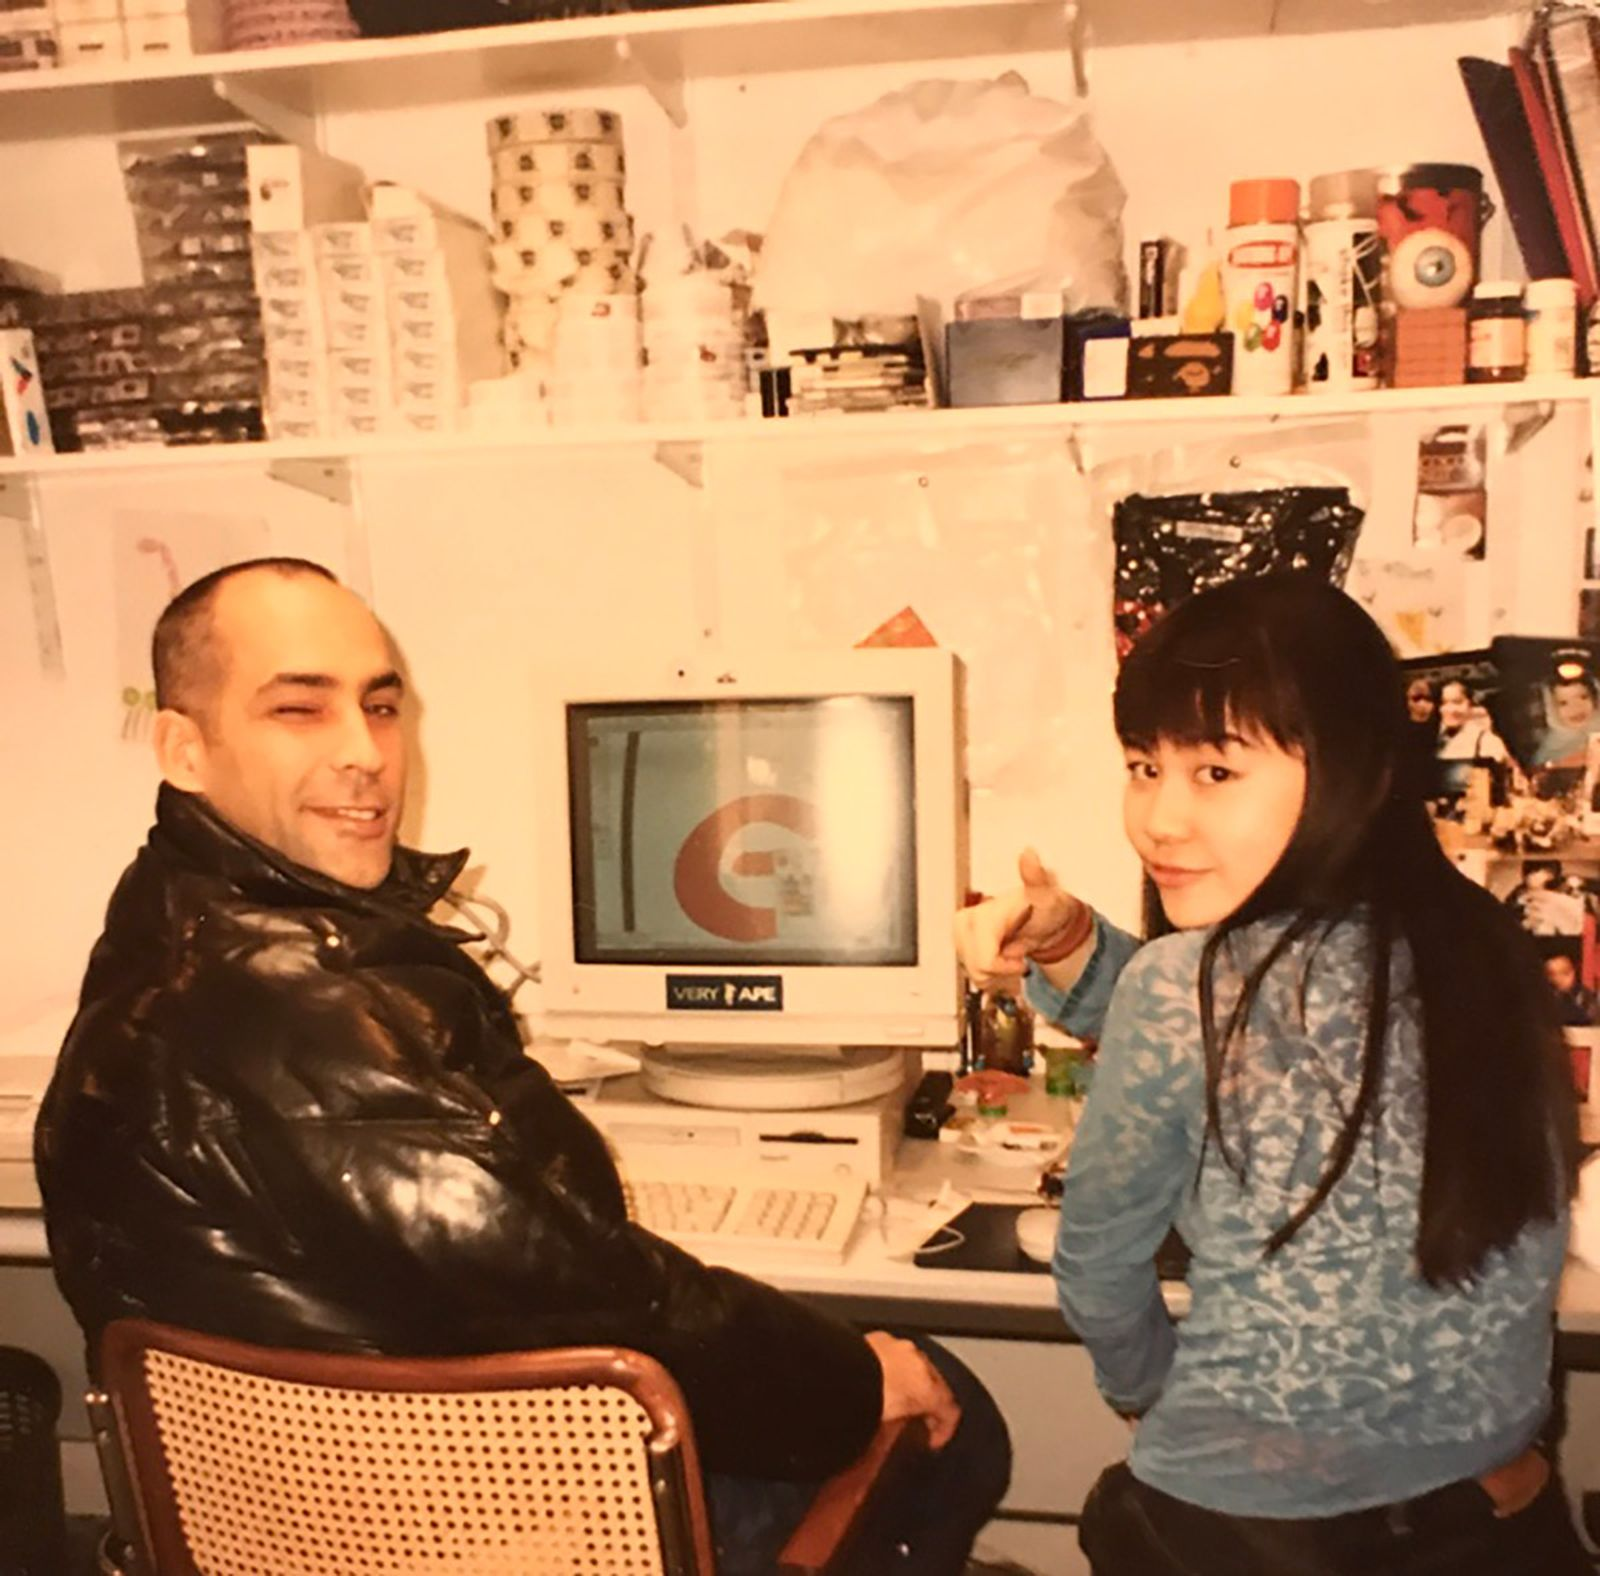 Hitomi Yokoyama with James Lebon sitting in front of a computer